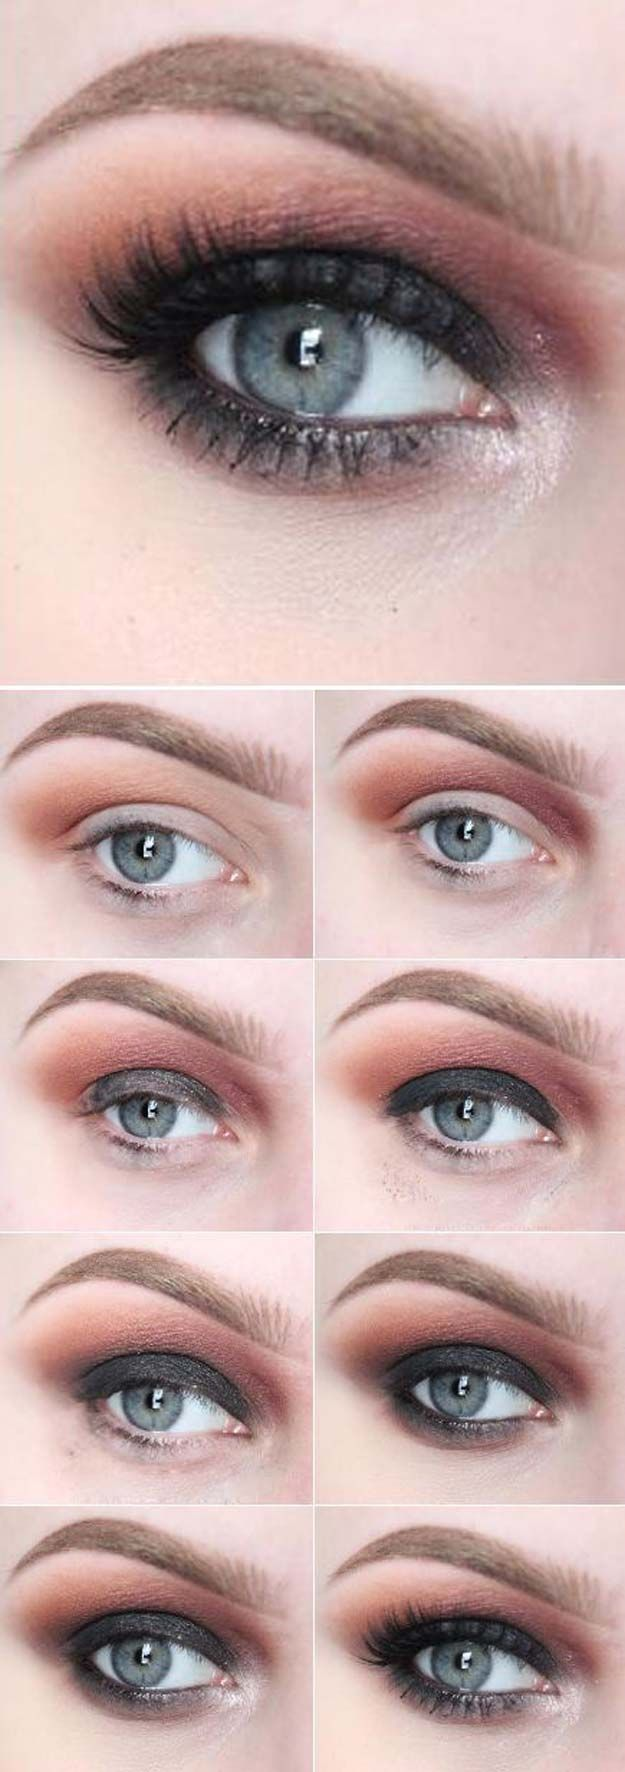 makeup tutorial for blondes with green eyes